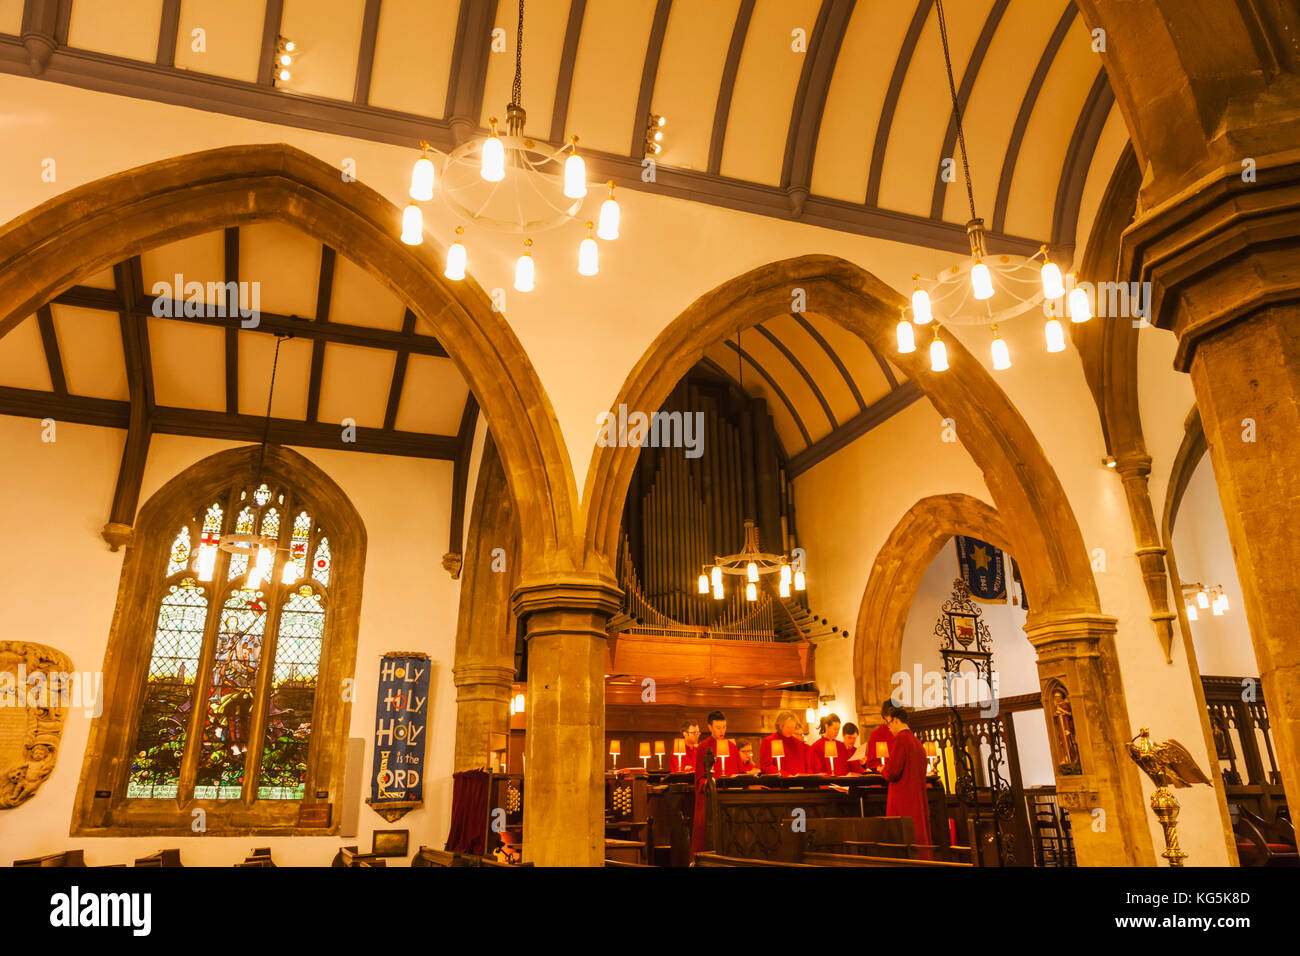 England, Oxfordshire, Oxford, St Michael at the North Gate Church, Choir Singing - Stock Image